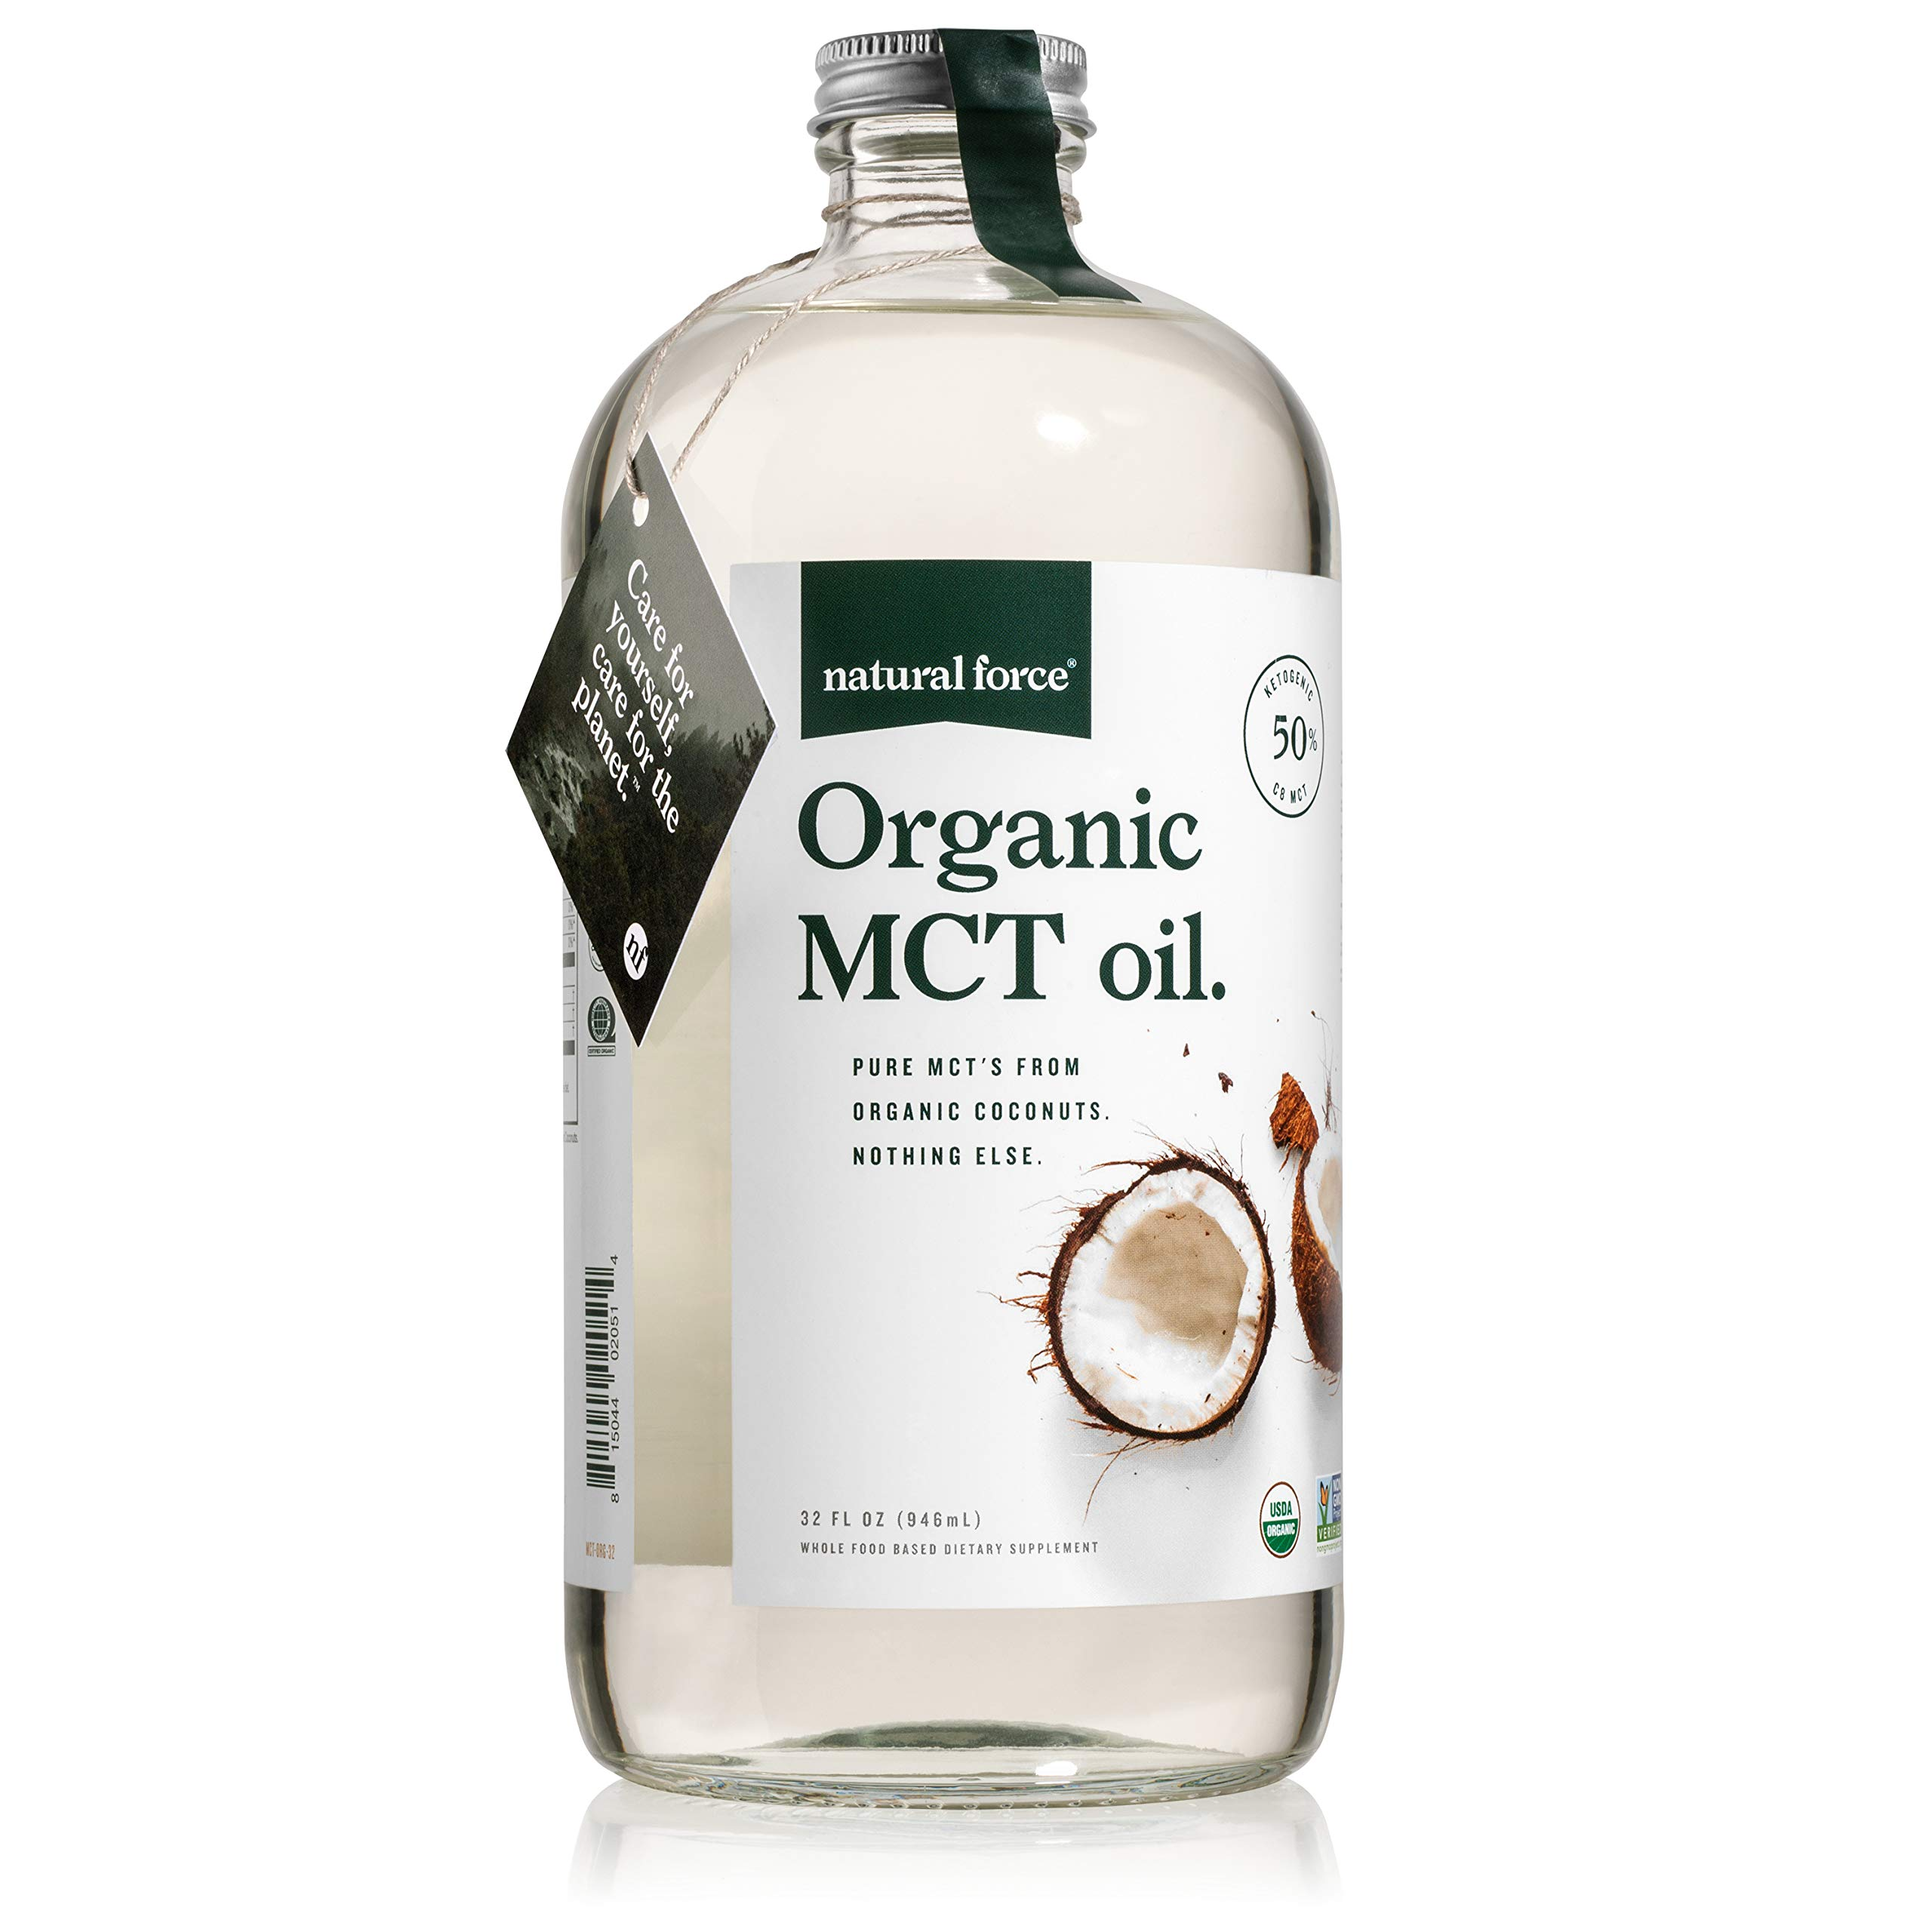 USDA Organic MCT Oil in 32 Oz Glass Bottle, Best for Keto Diet Recipes - Full Spectrum C8 C10 C12 Pure Coconut MCTs - Premium Quality & Non-GMO *Sustainable Packaging* by Natural Force, 32 Ounce